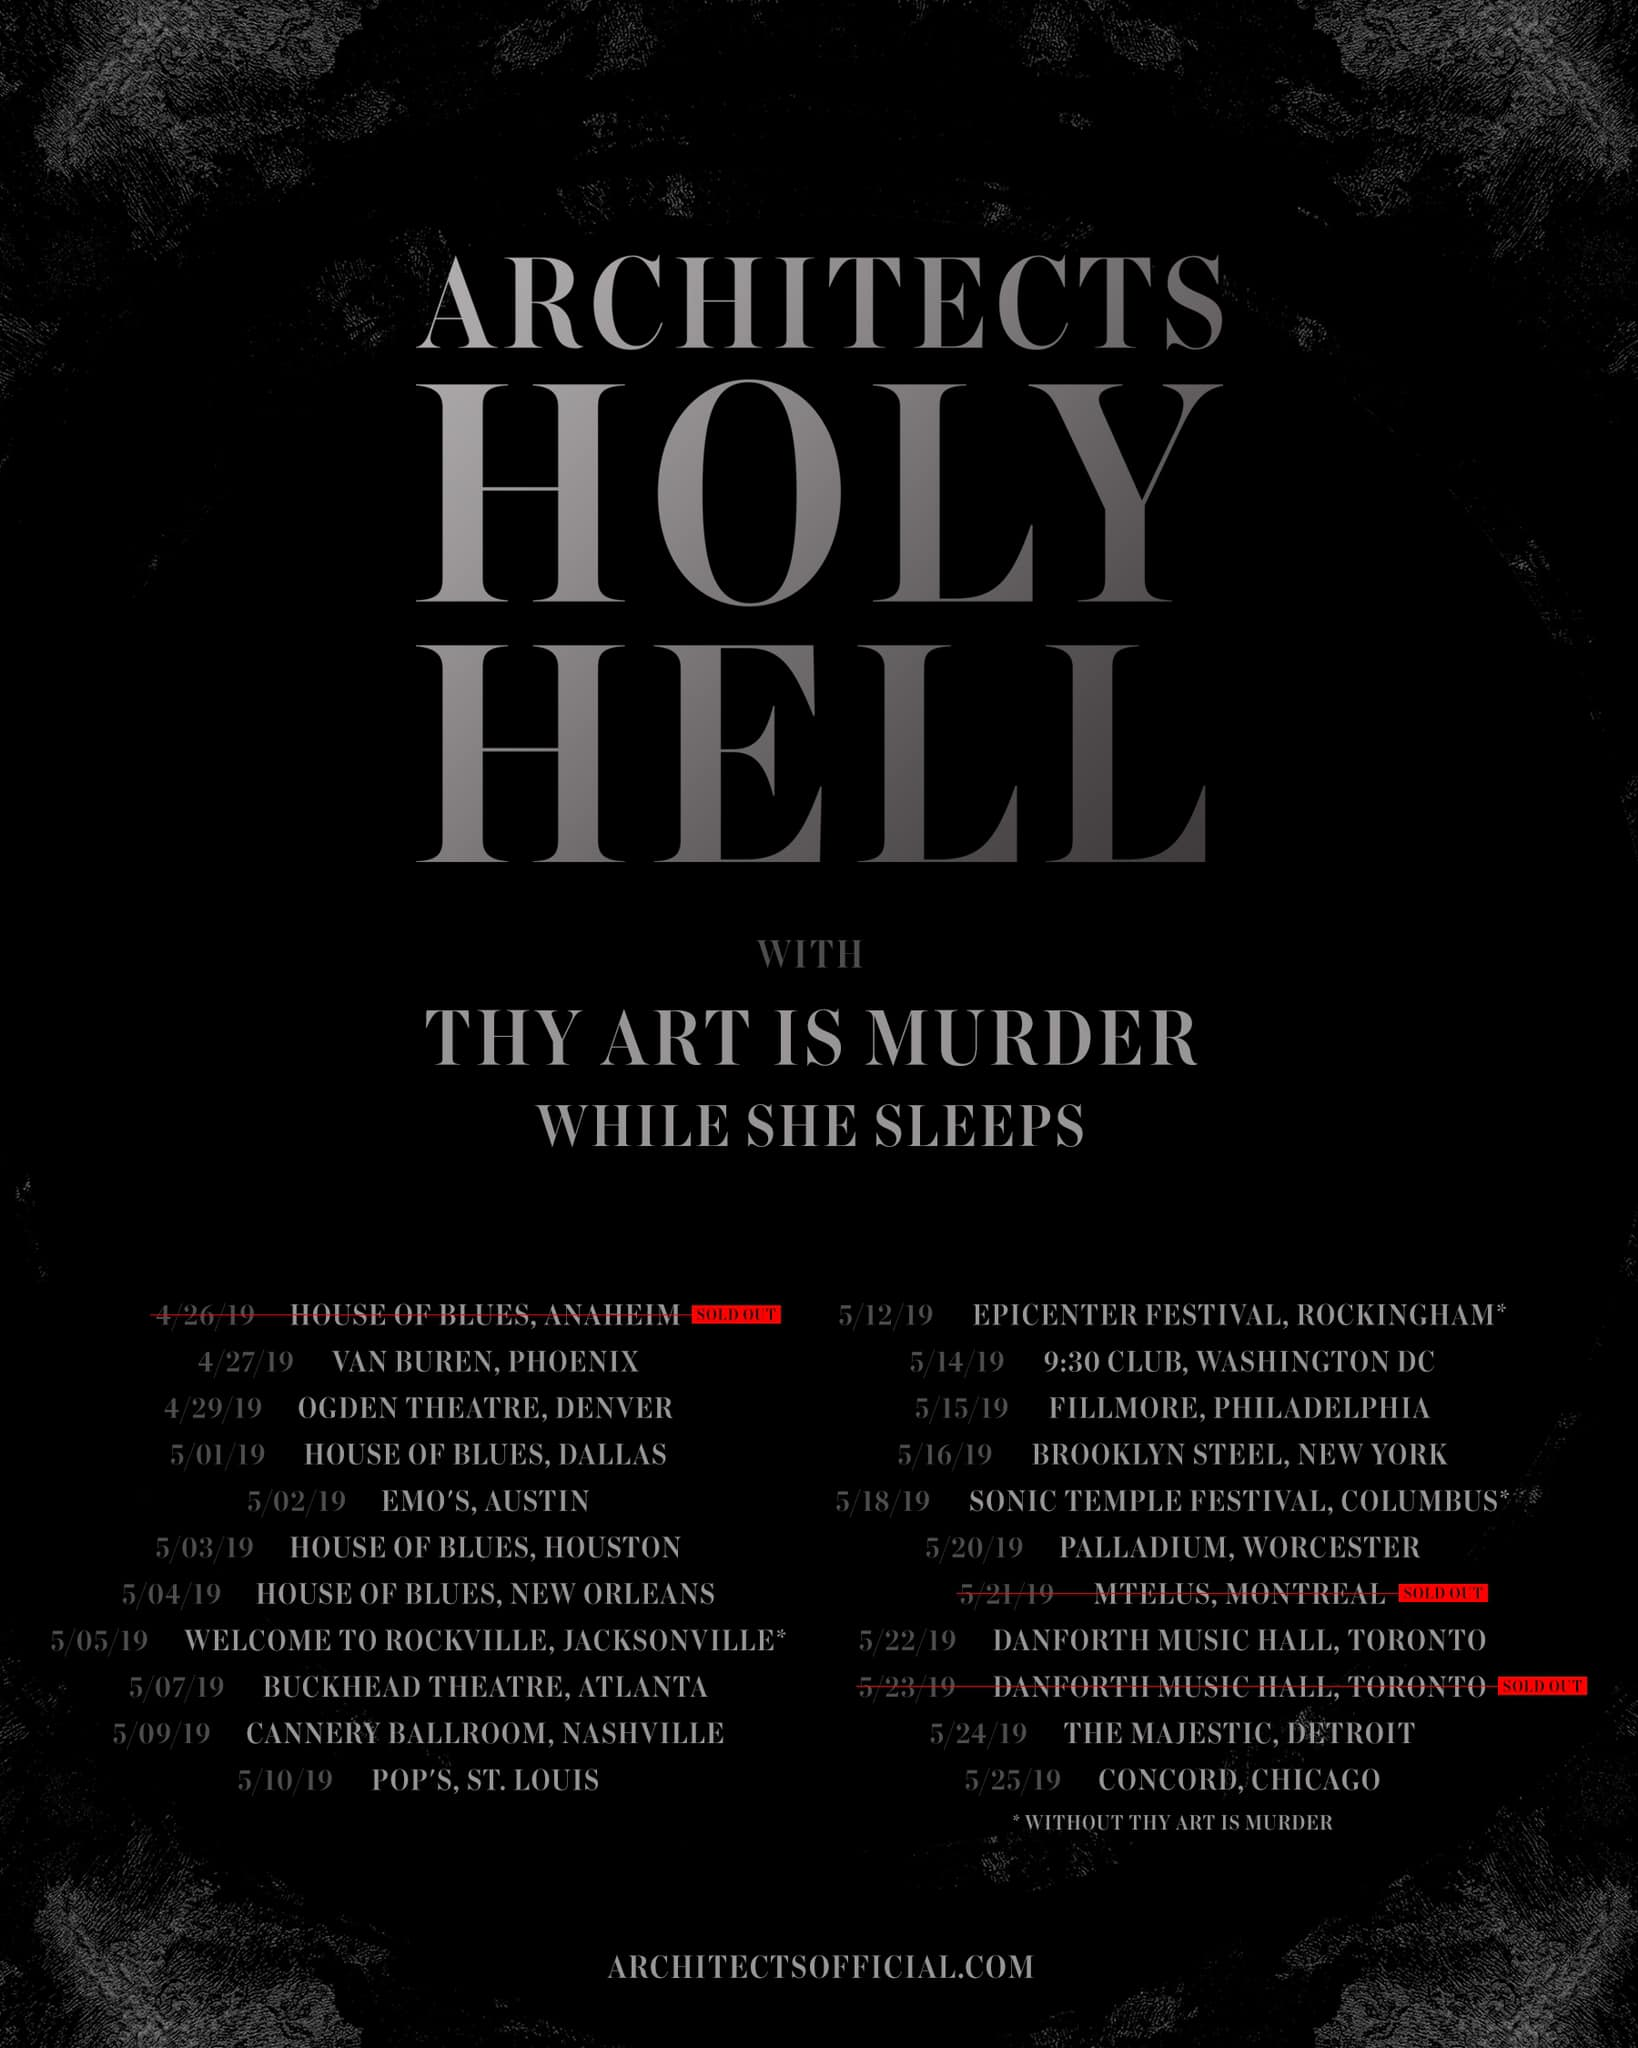 Architects - Venue: Cannery BallroomCity: Nashville, TNDate: May 9, 2019